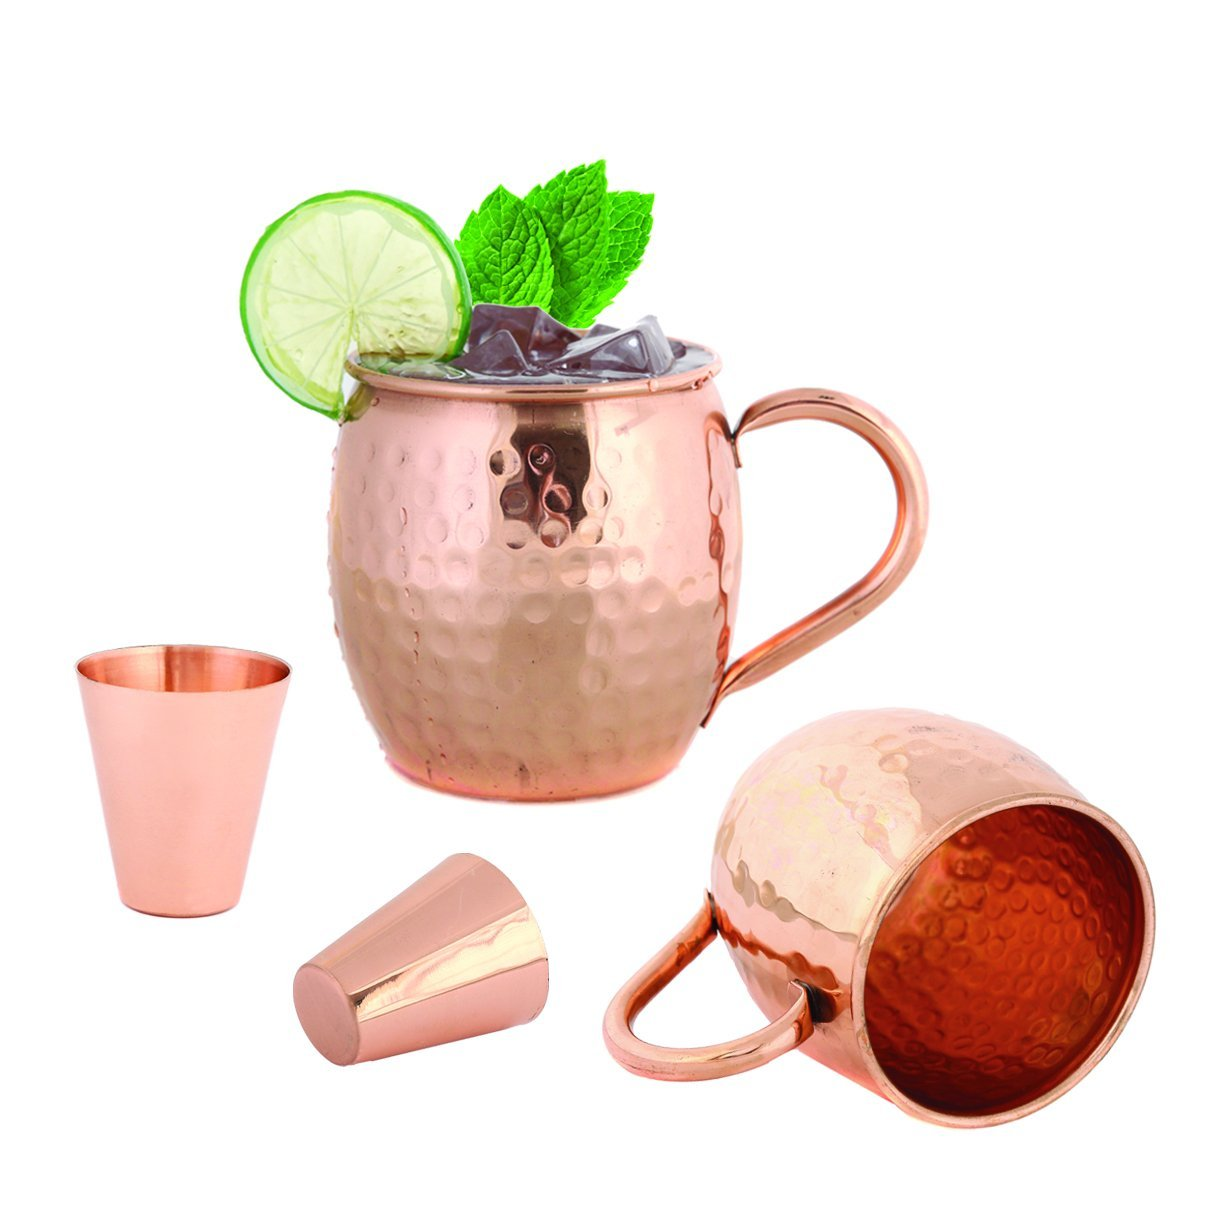 Set of 2 Moscow Mule Copper Mugs 16 OZ - Two Copper Shot Glass Included - 100% Solid Pure Copper Hammered Barrel Cup Mug with No Inner Lining by Foodie Aid